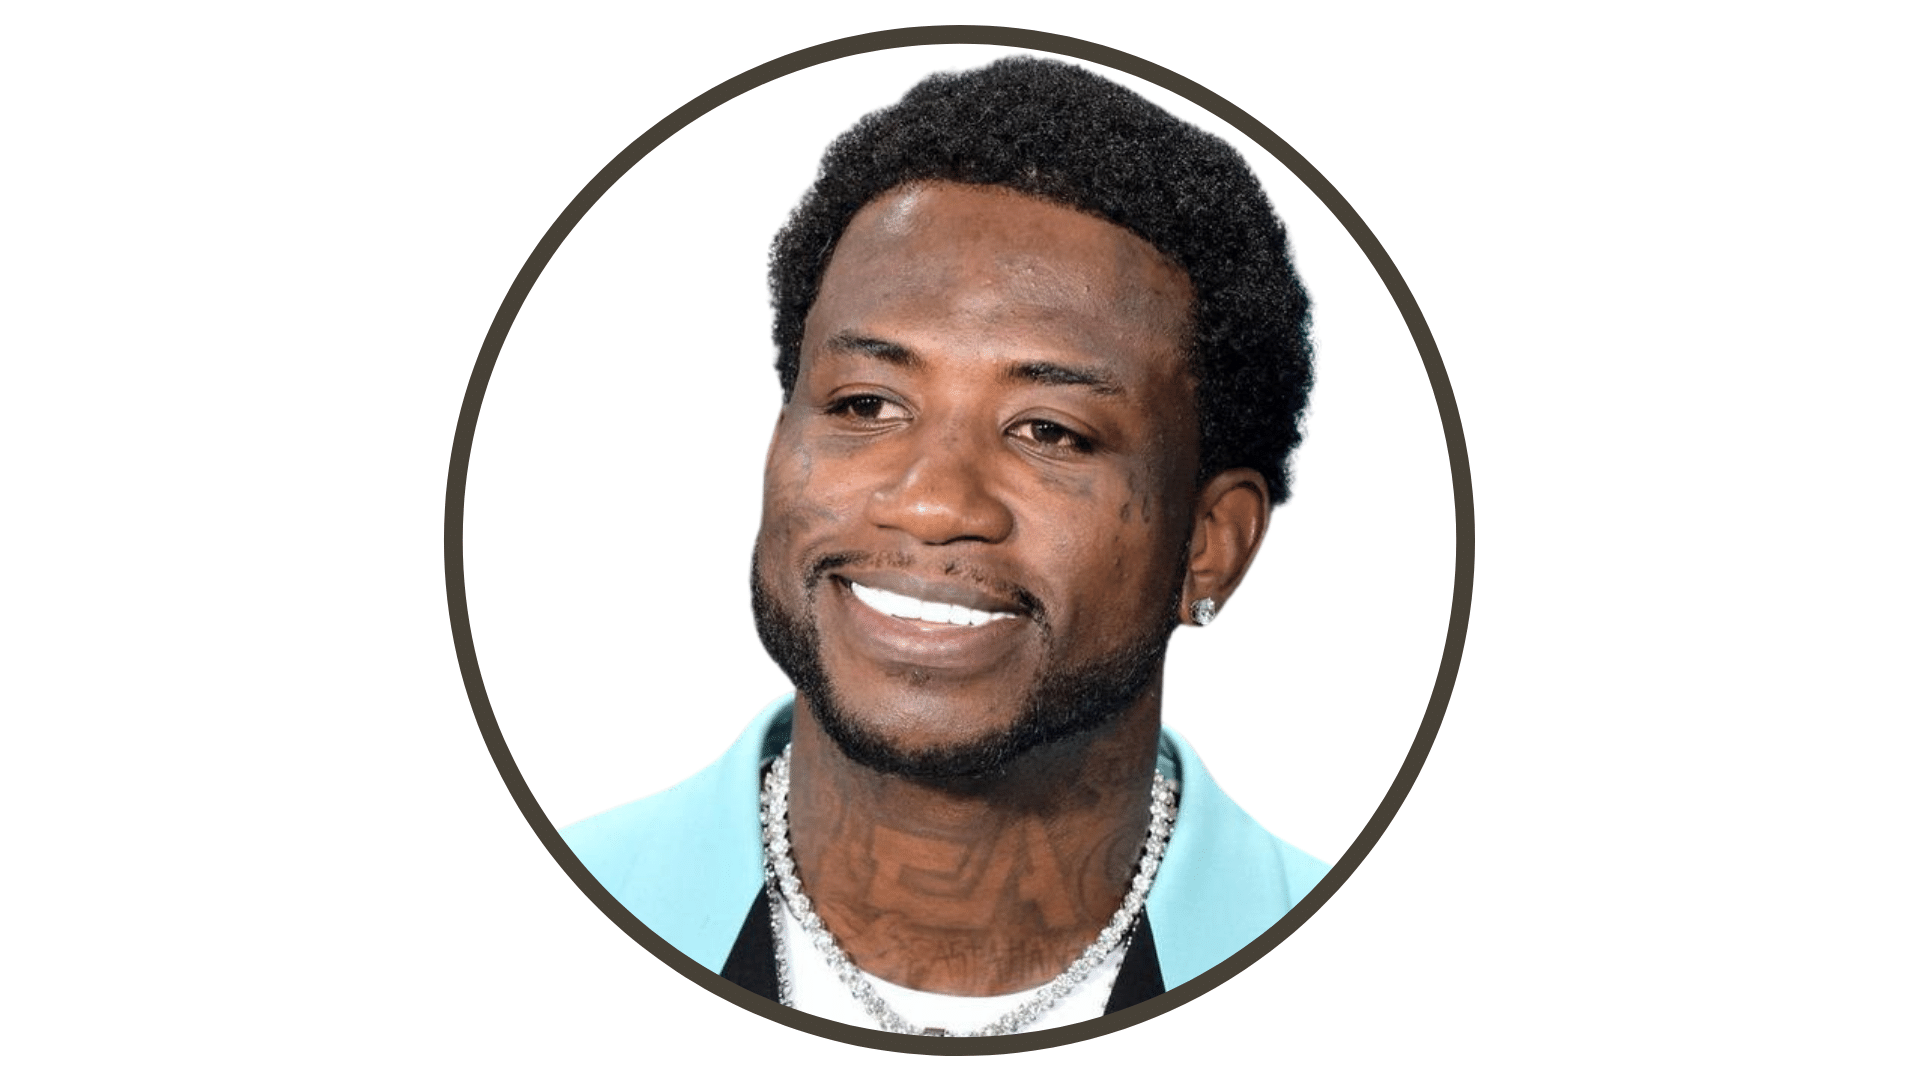 Gucci Mane Height